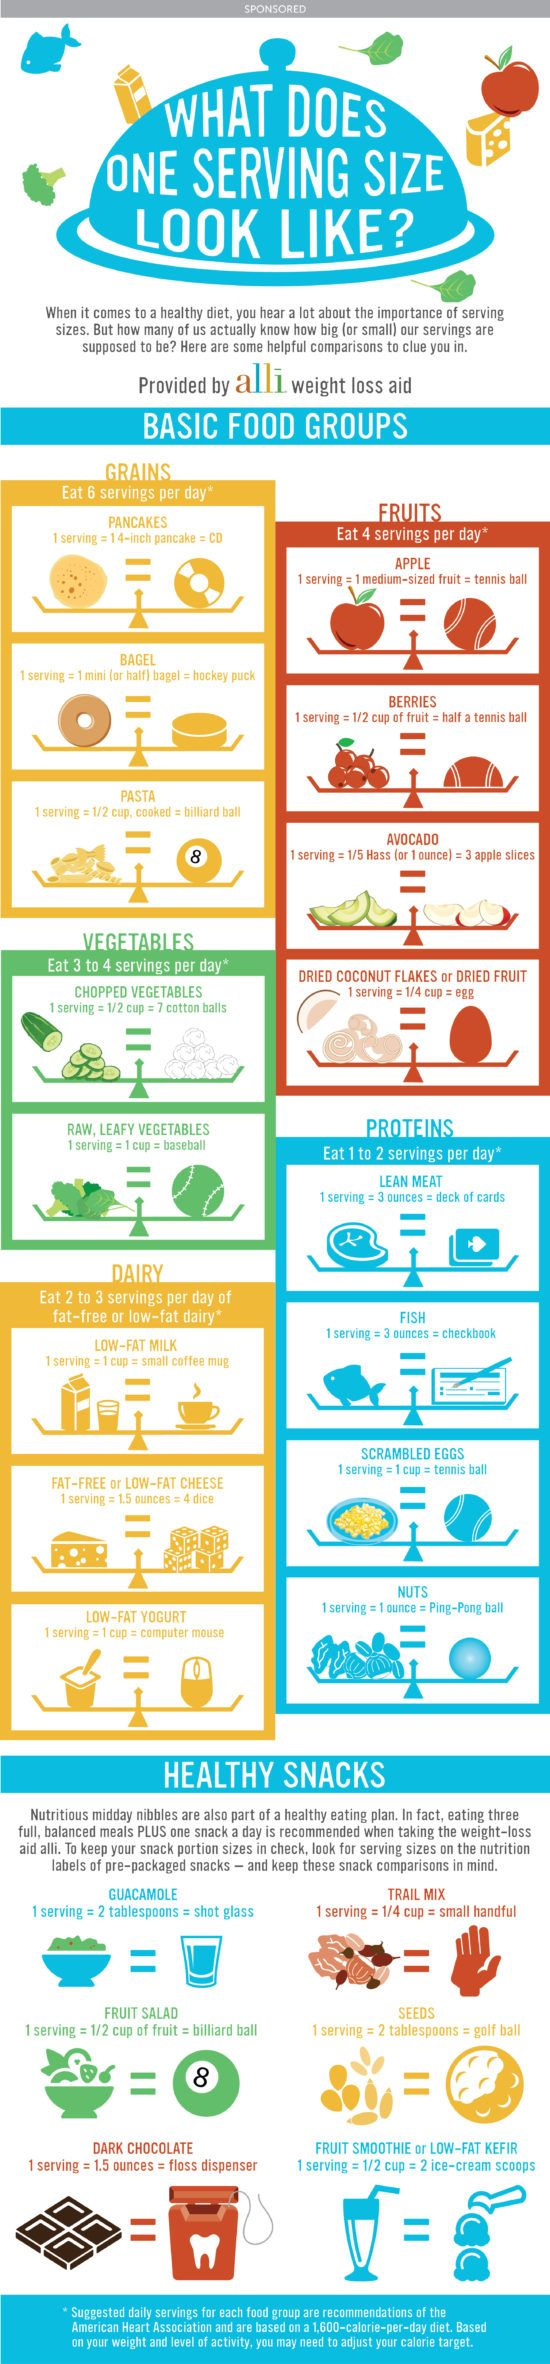 Portion Control Is The Key To Beating The Bulge | The WHOot